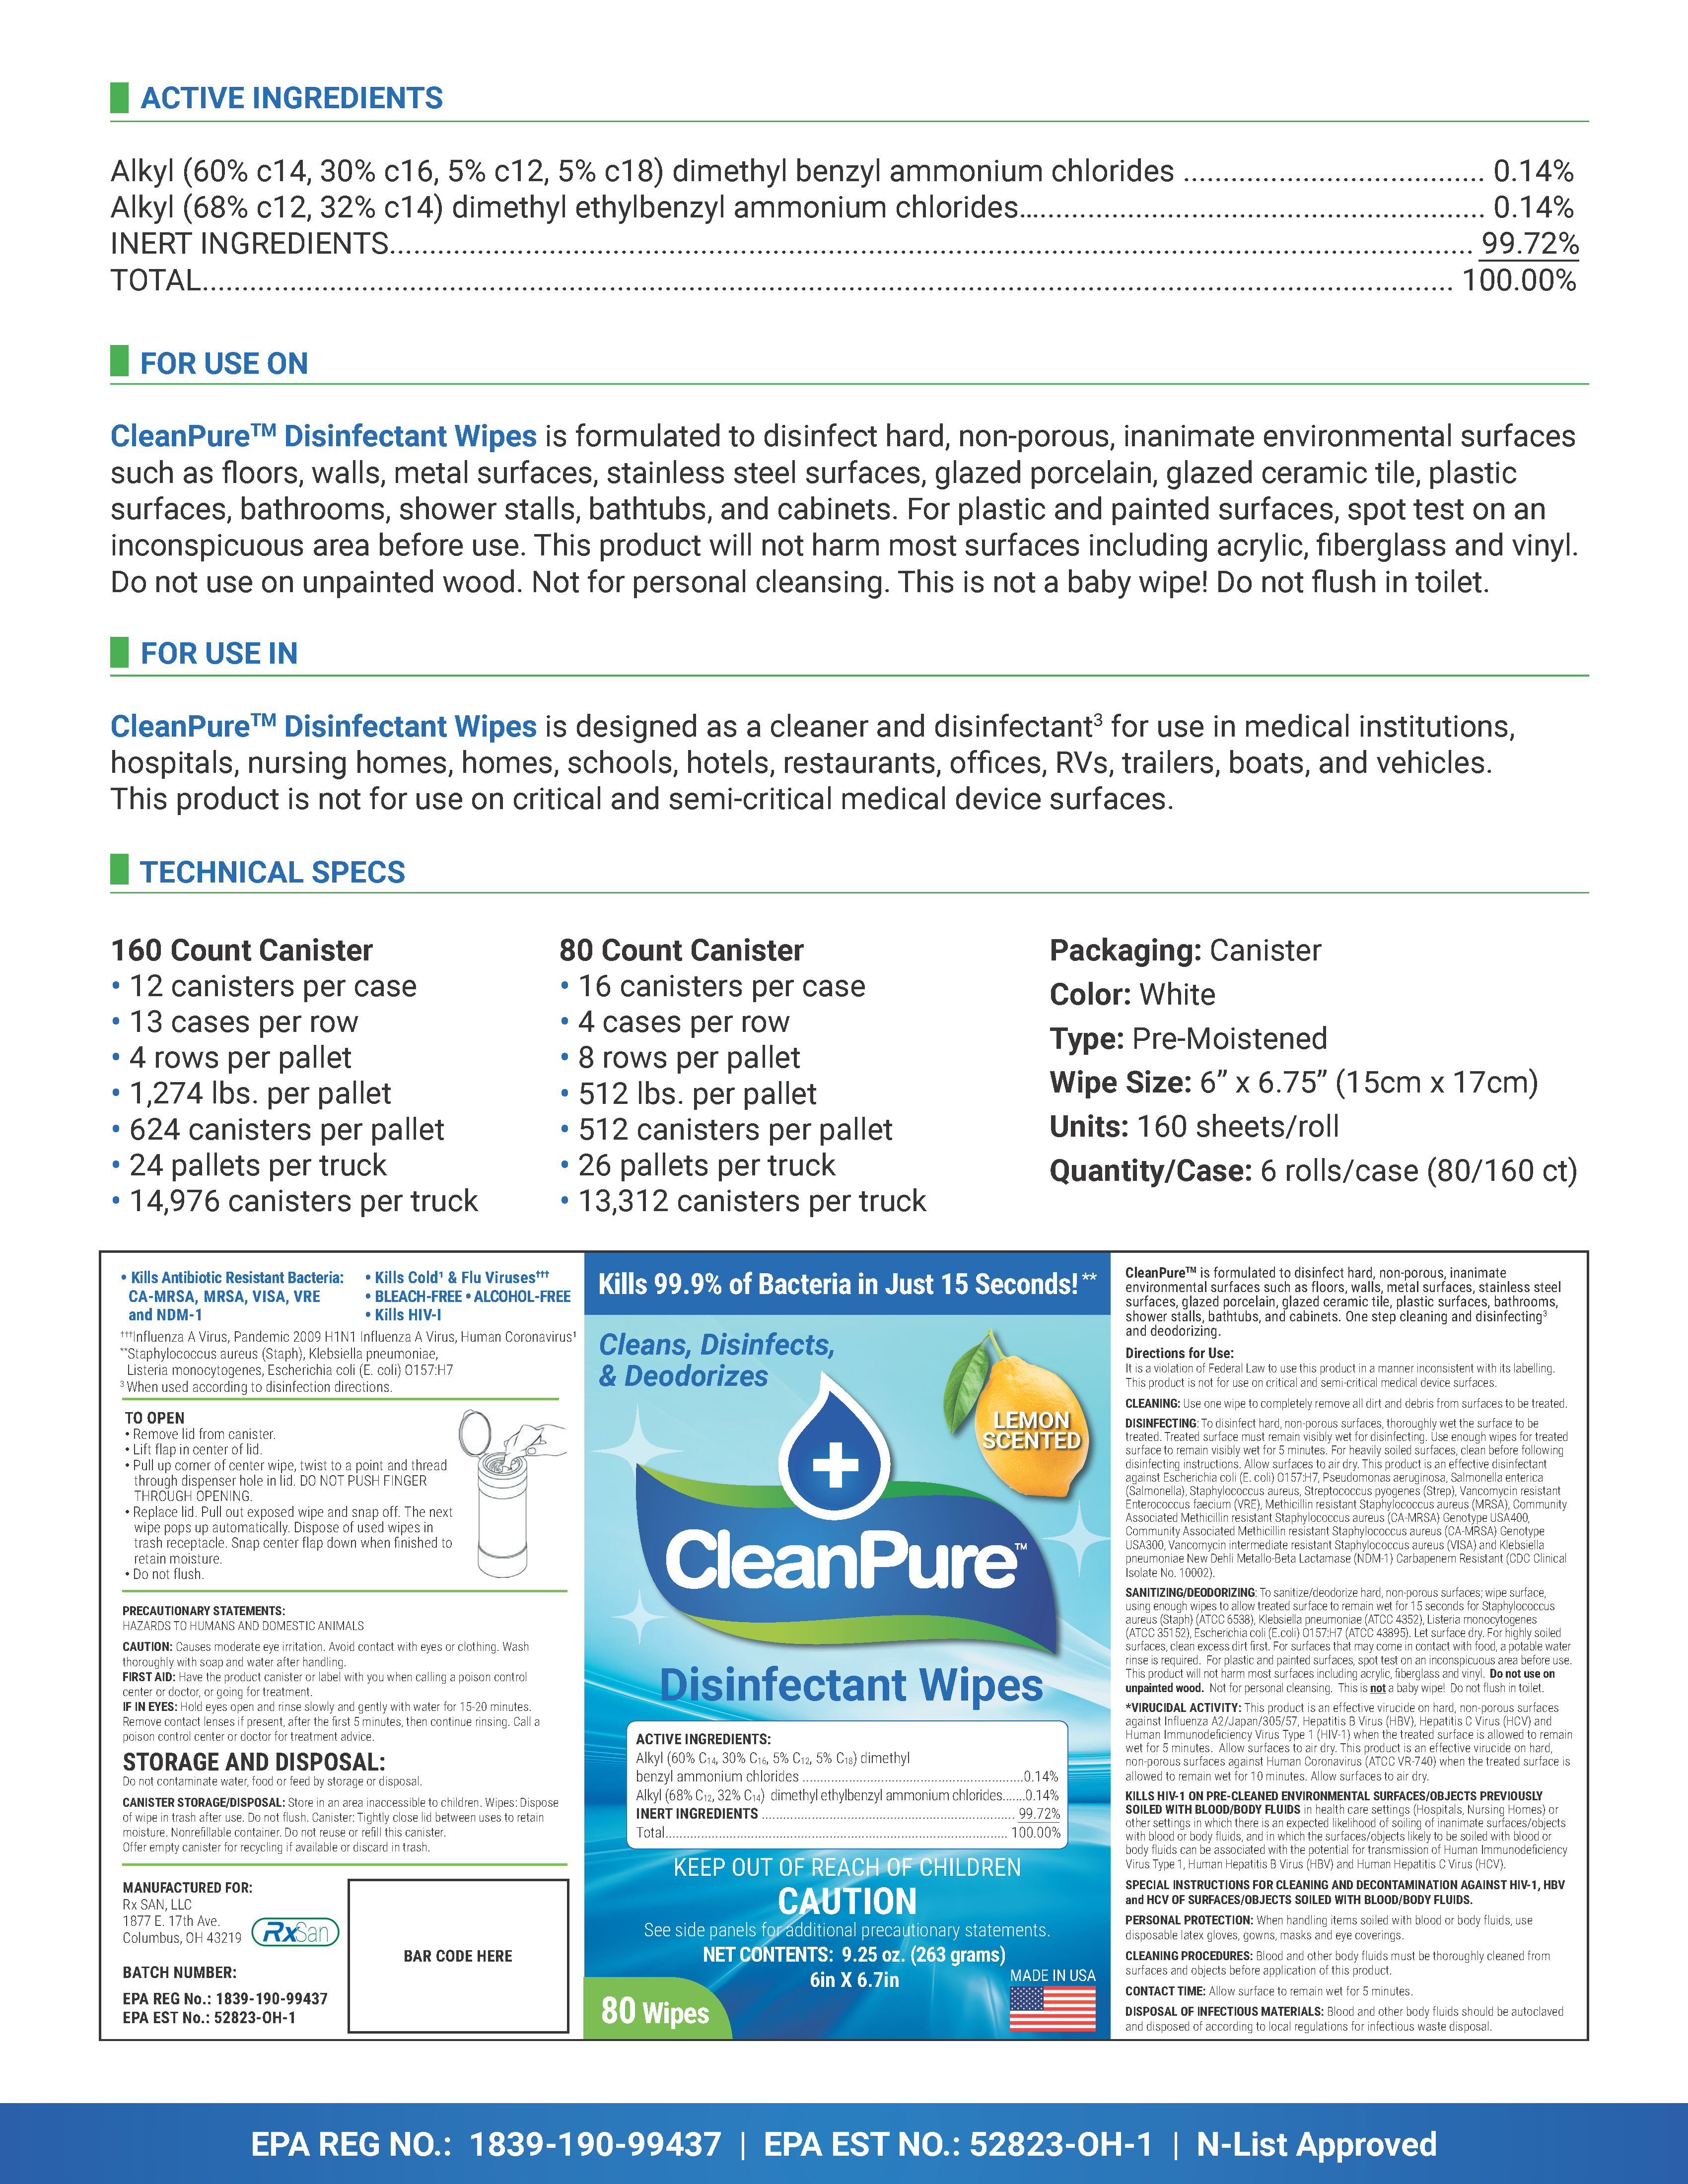 #E3300 RXS - Stat Sheets - CleanPure WIPES 005 Blank 06212021_Page_2